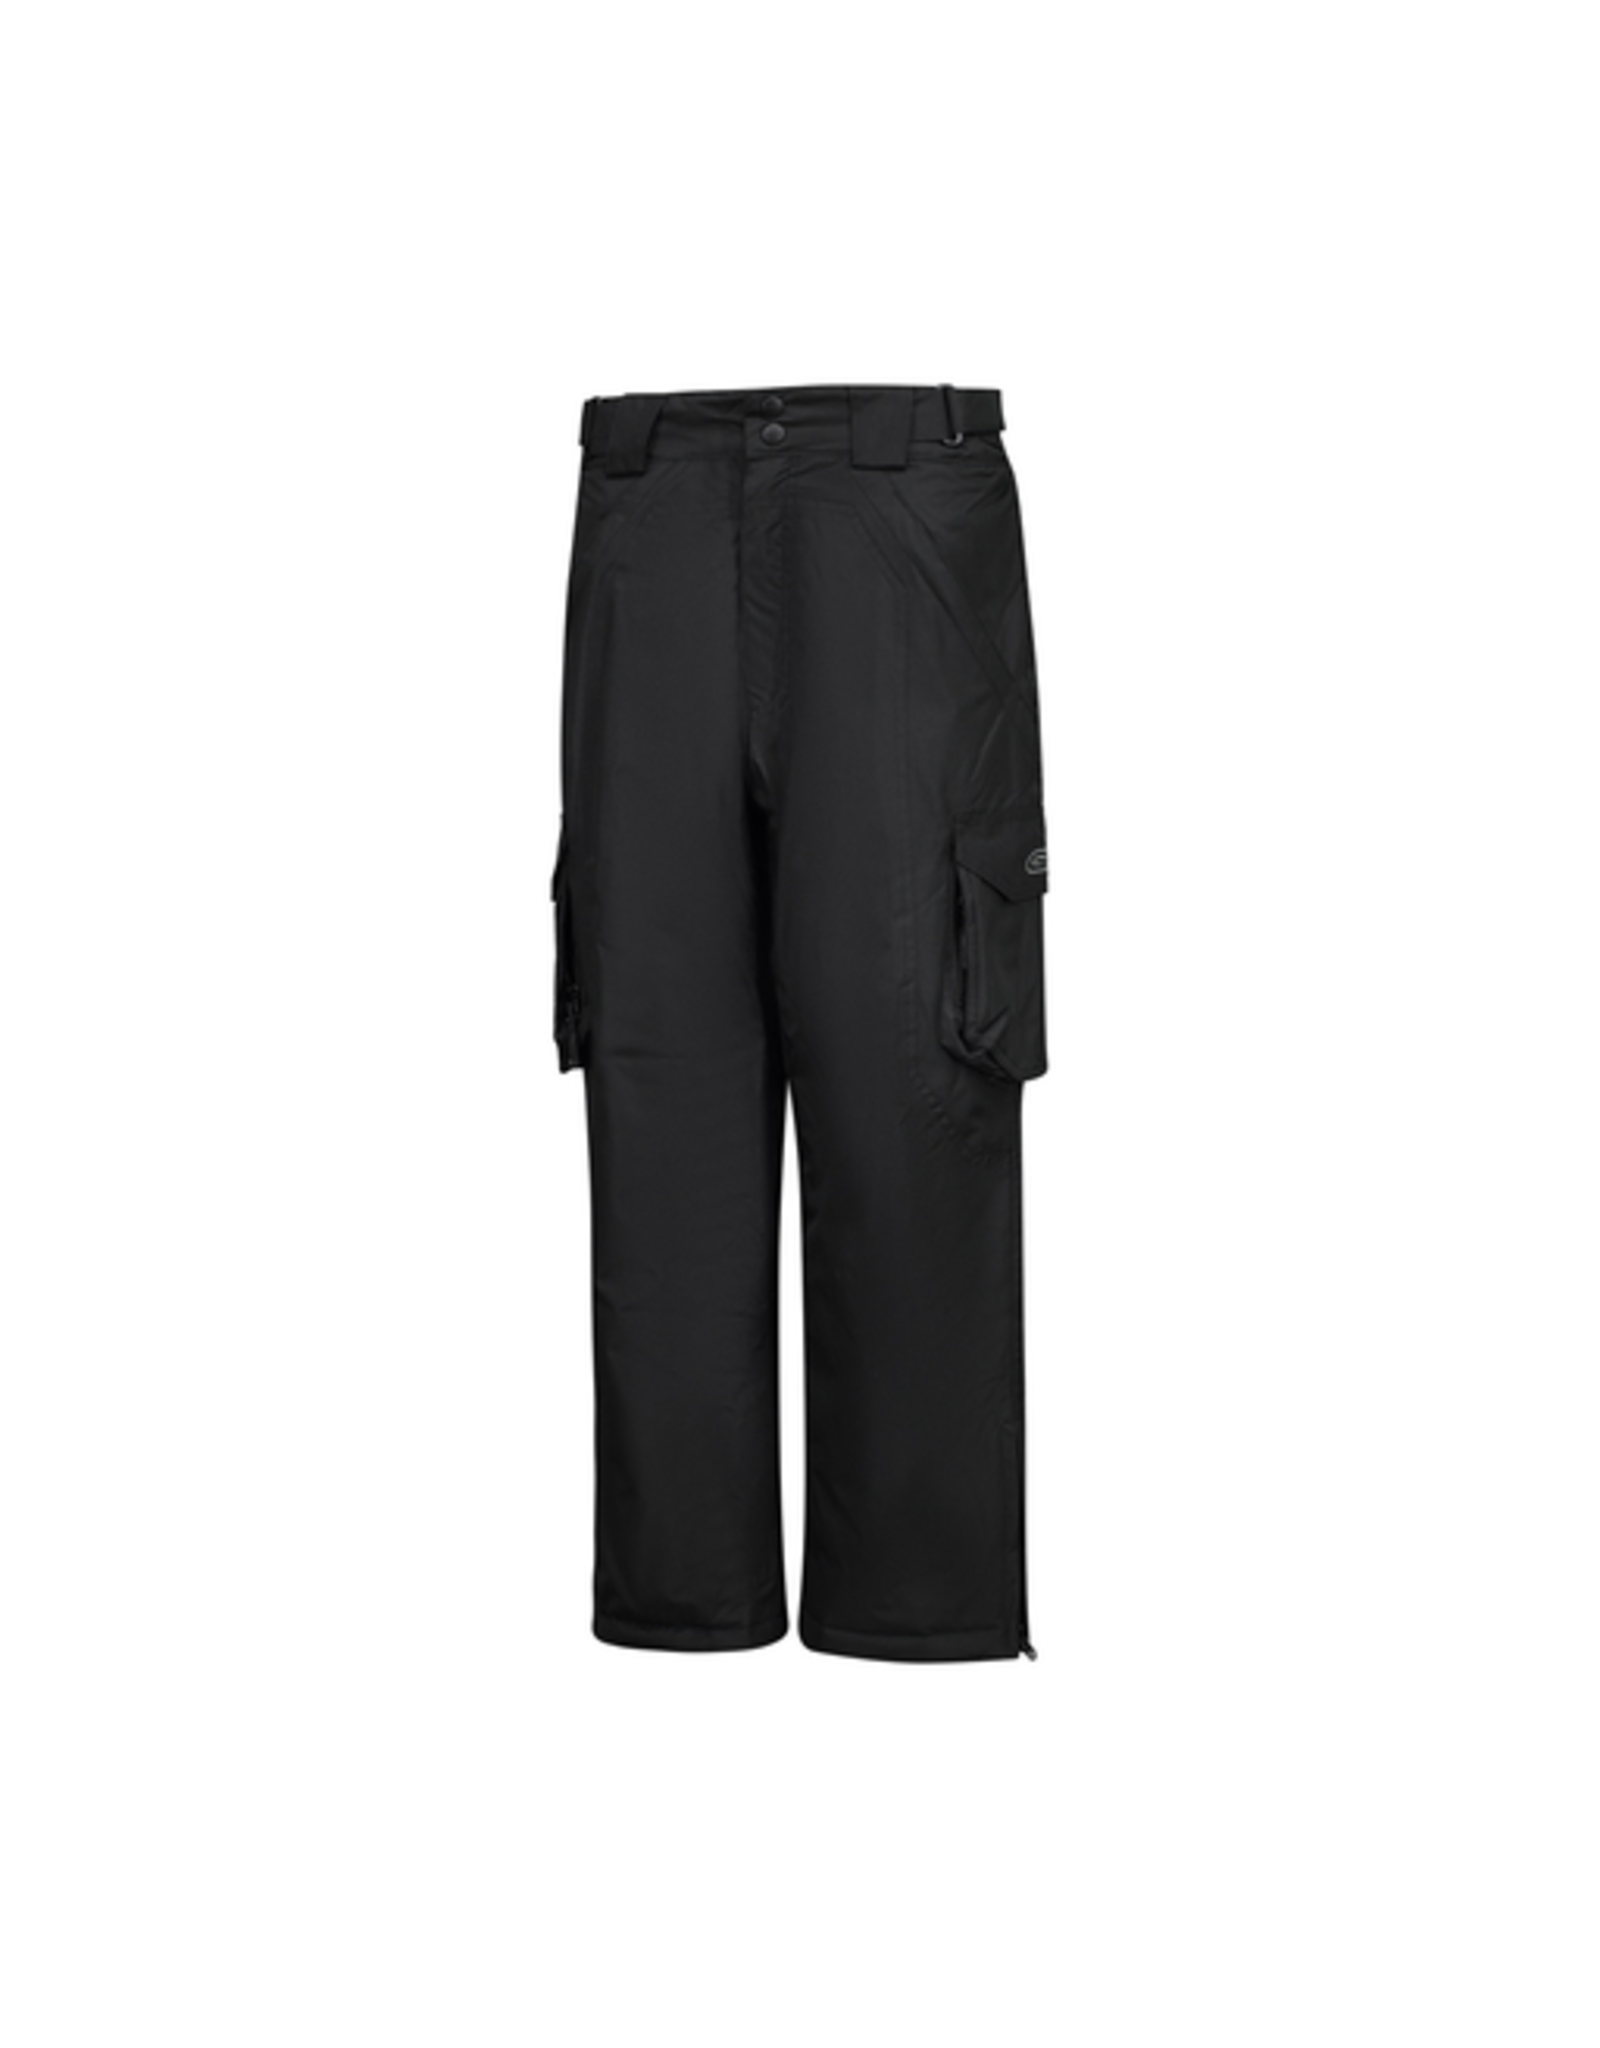 GKS GKS Youth Insulated Waist Pant